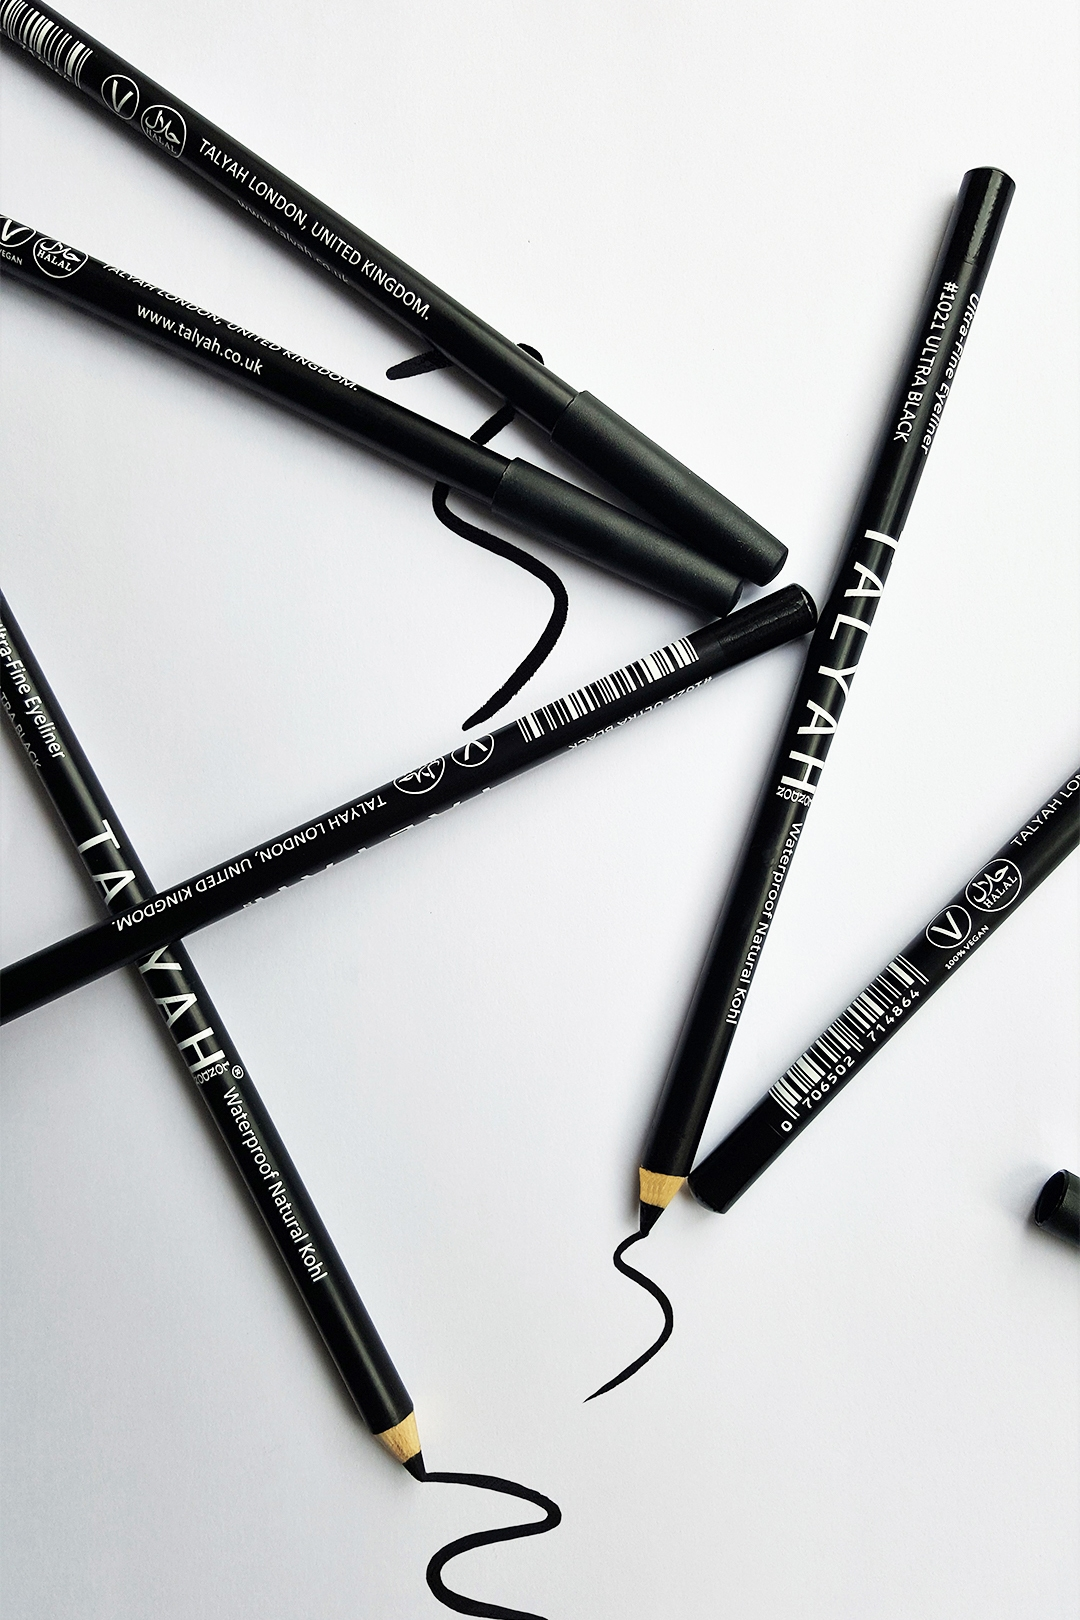 Kohl eyeliner waterproof